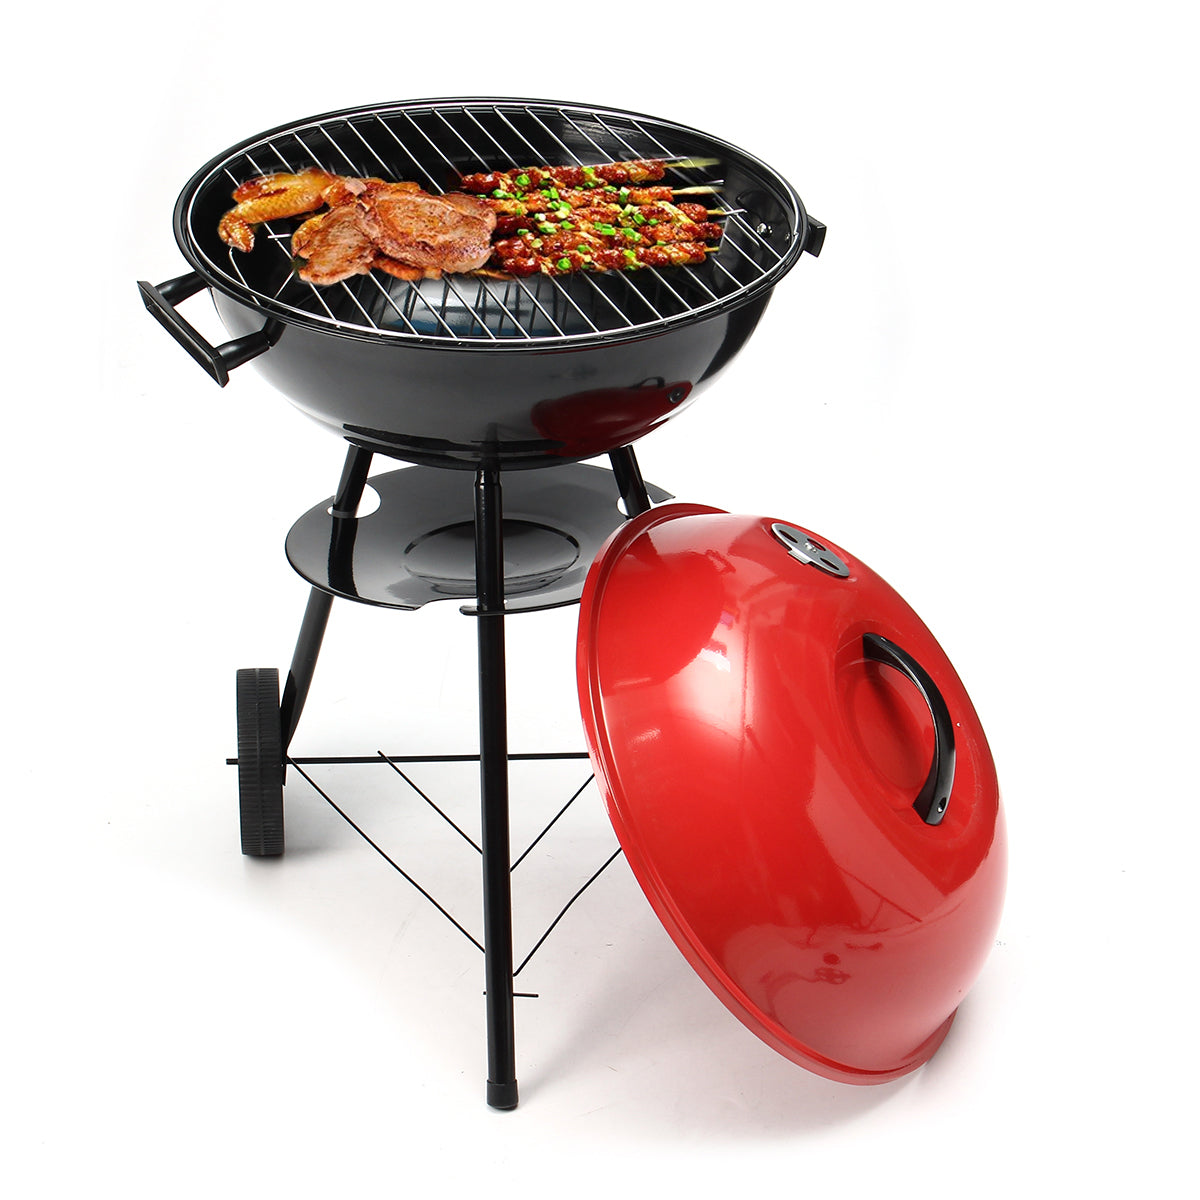 Portable Red Kettle Trolley Grill